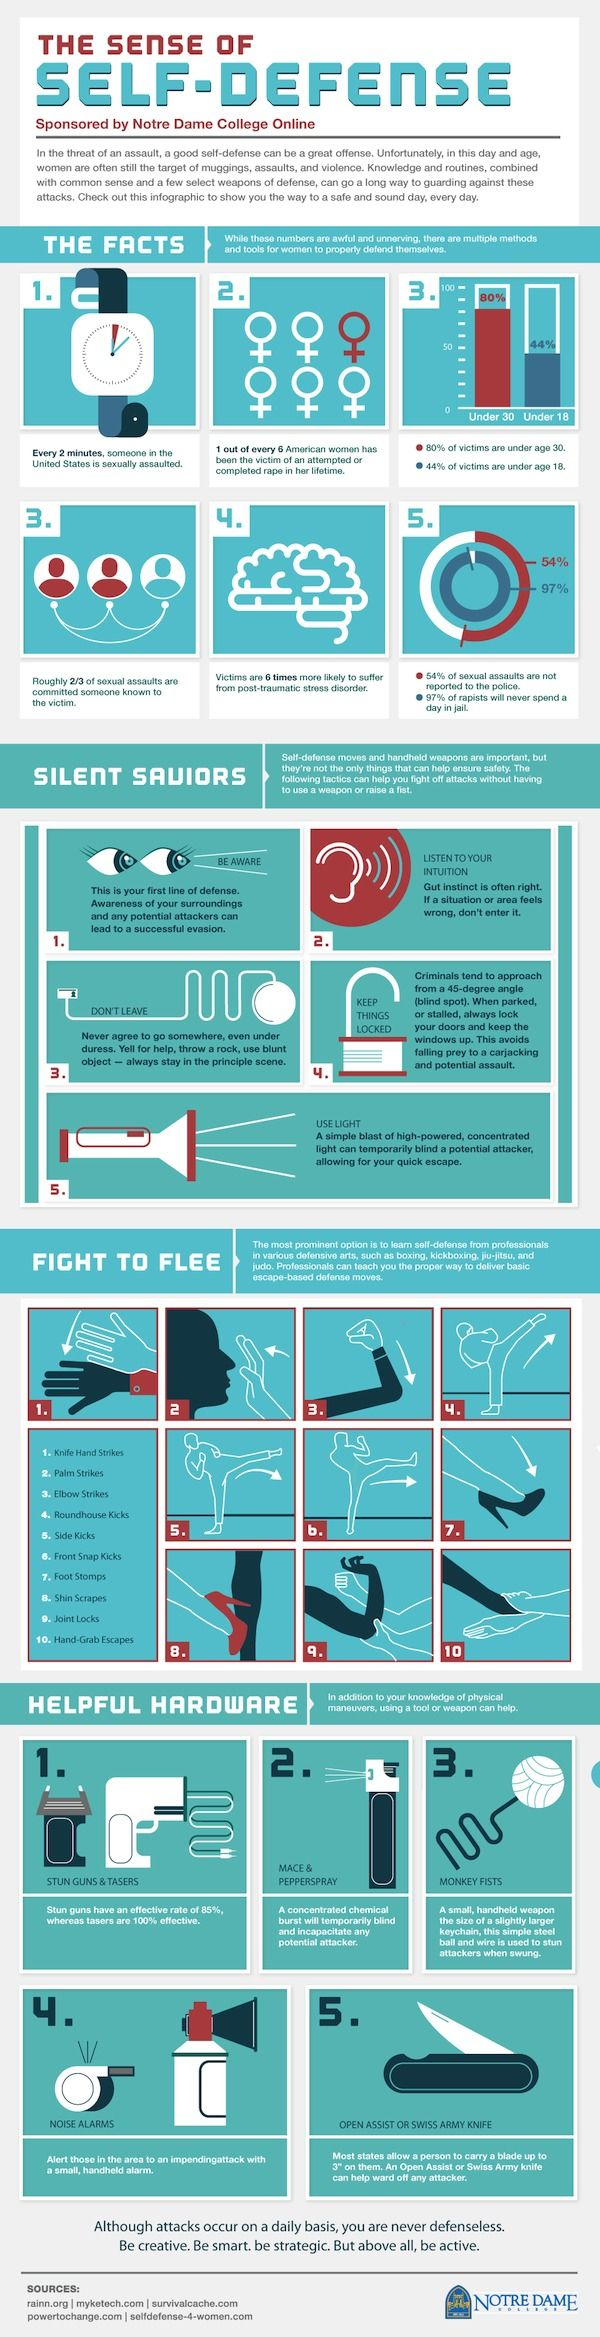 http://www.howtofightandwin.net/self-defense-techniques.html Personal safety skills. The Sense of Self Defense   Infographic